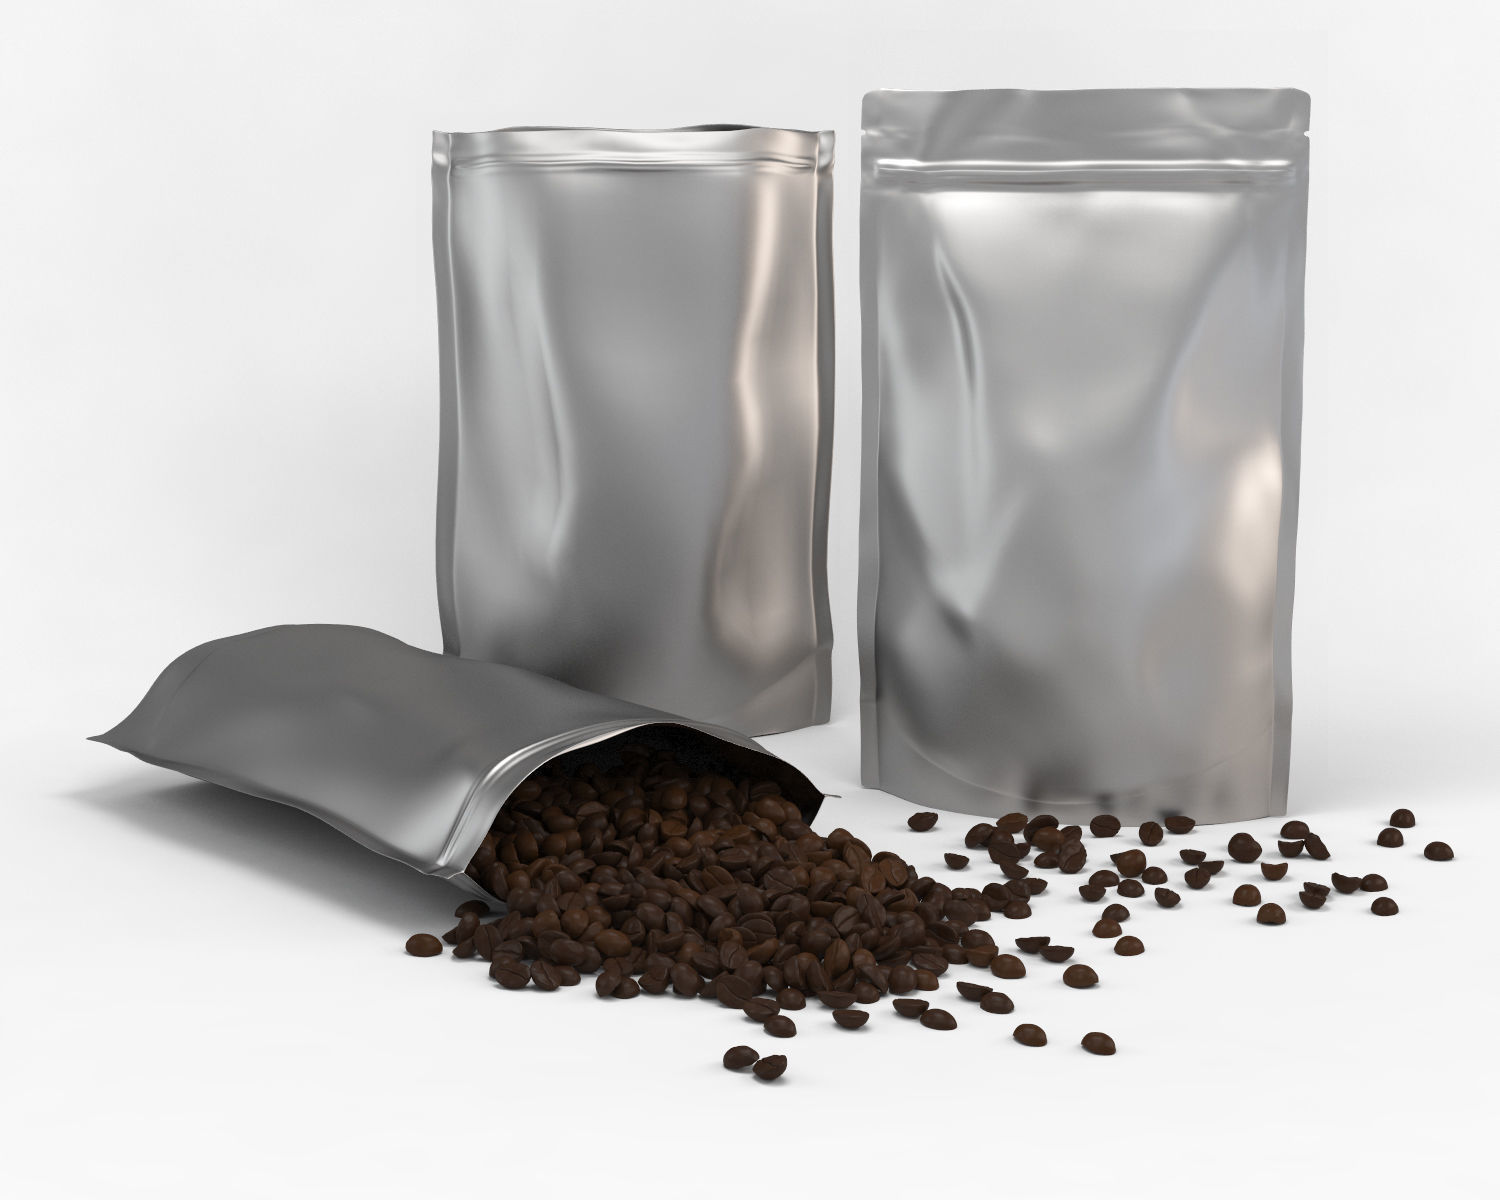 Coffee plastic pouch and scattered coffee beans